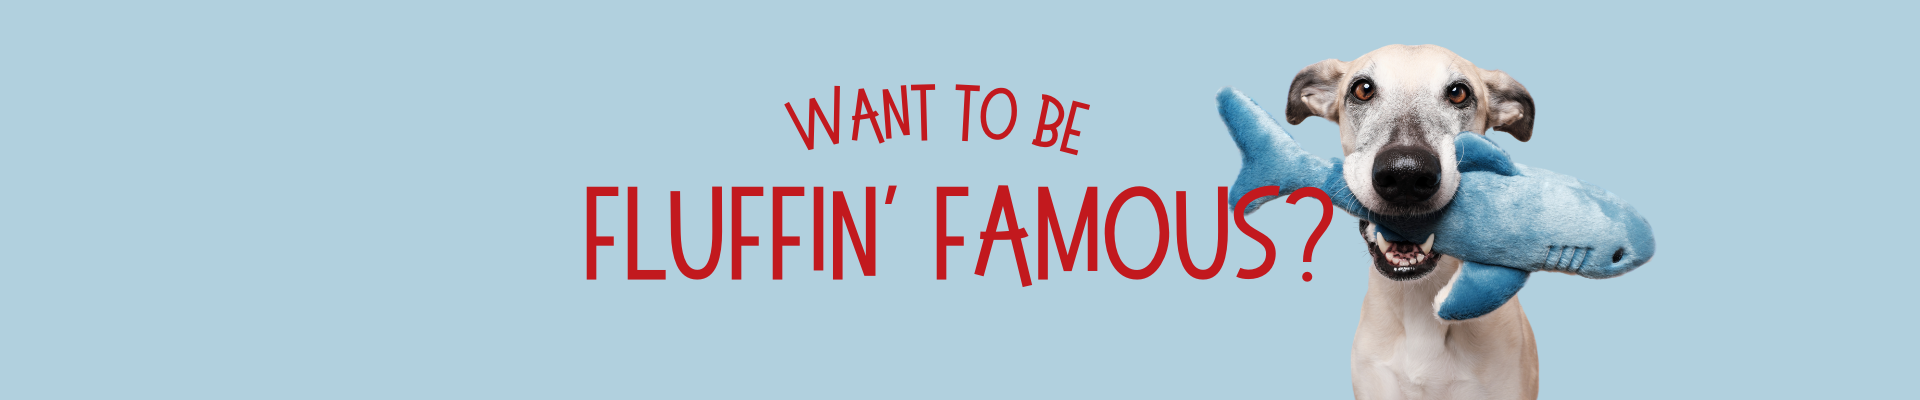 fluffinfamous-banner.png